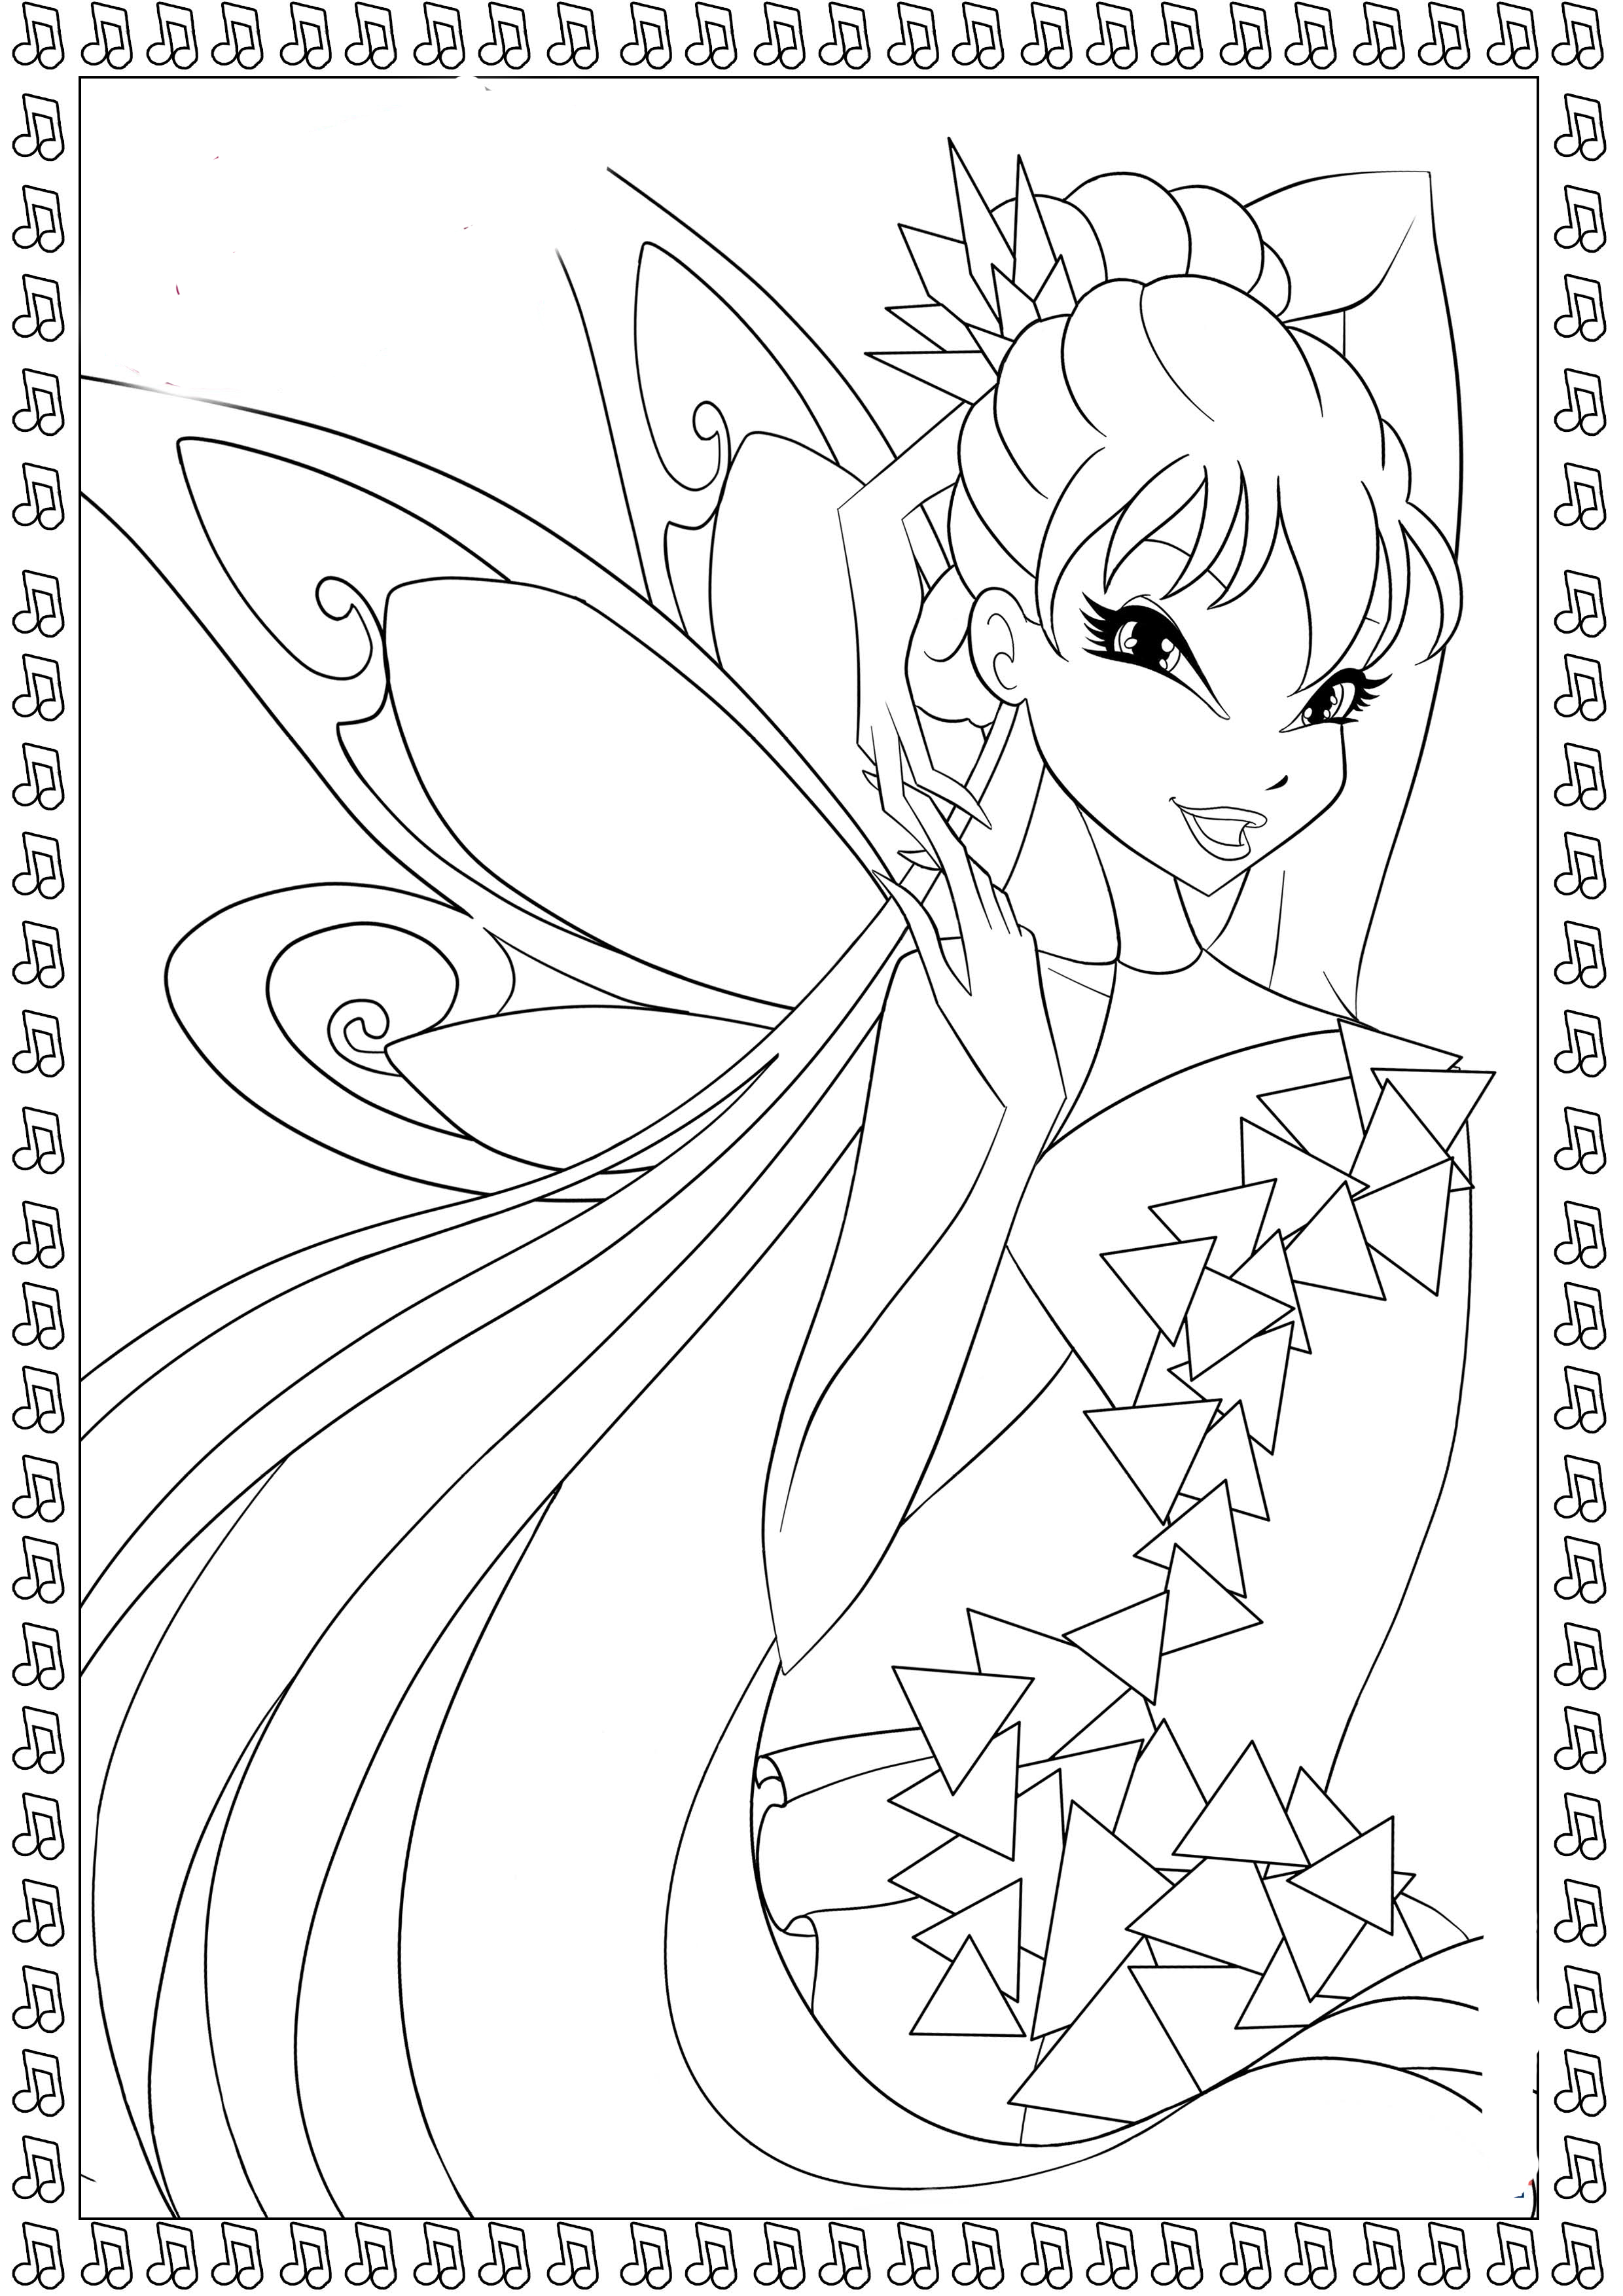 Winx Tynix coloring pages to download and print for free